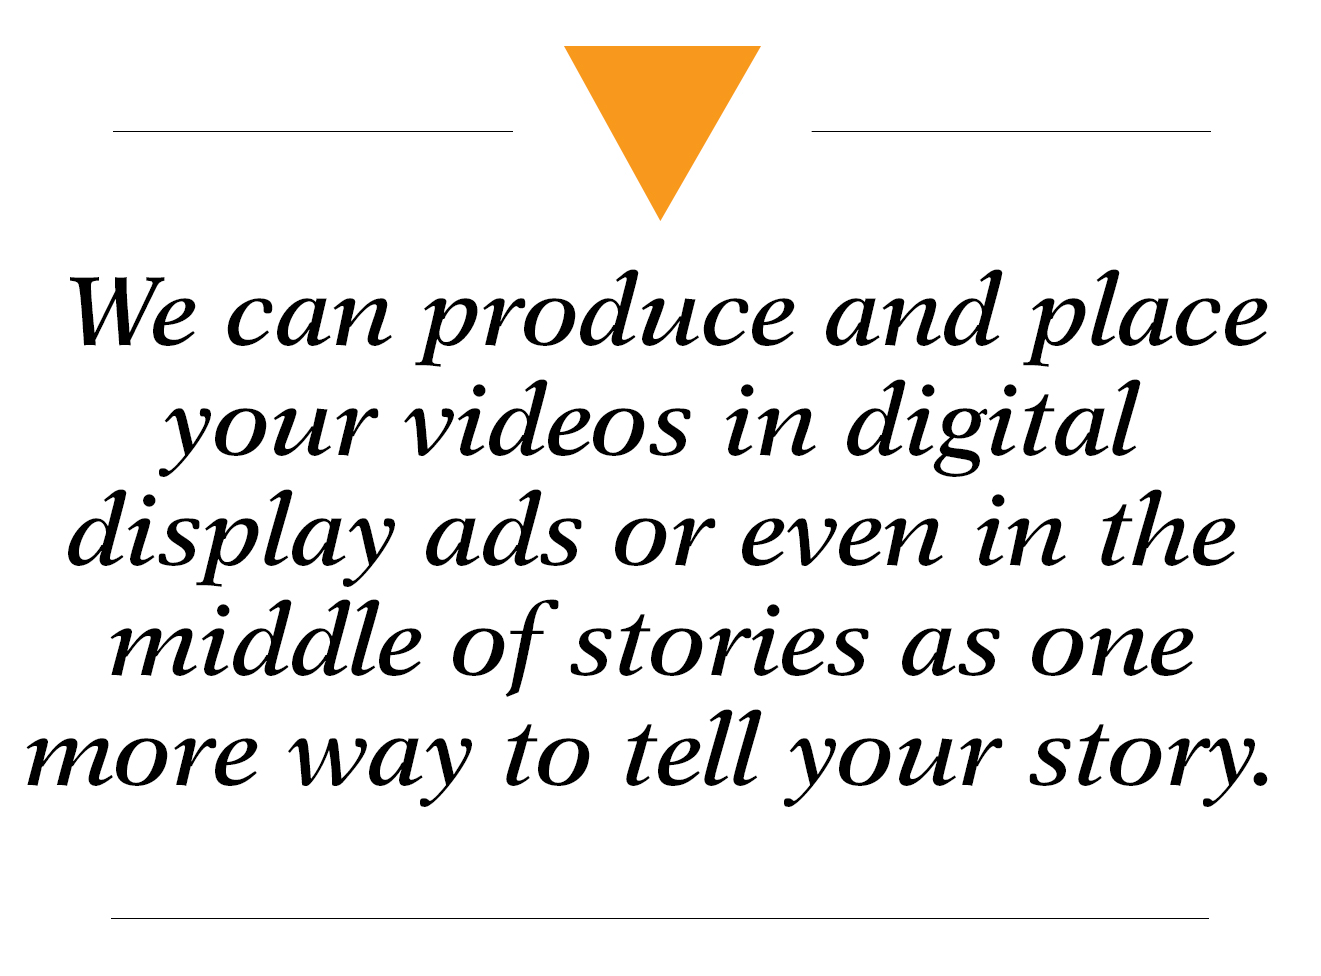 We can produce and place your videos in digital display ads or even in the middle of stories as one more way to tell your story - video marketing